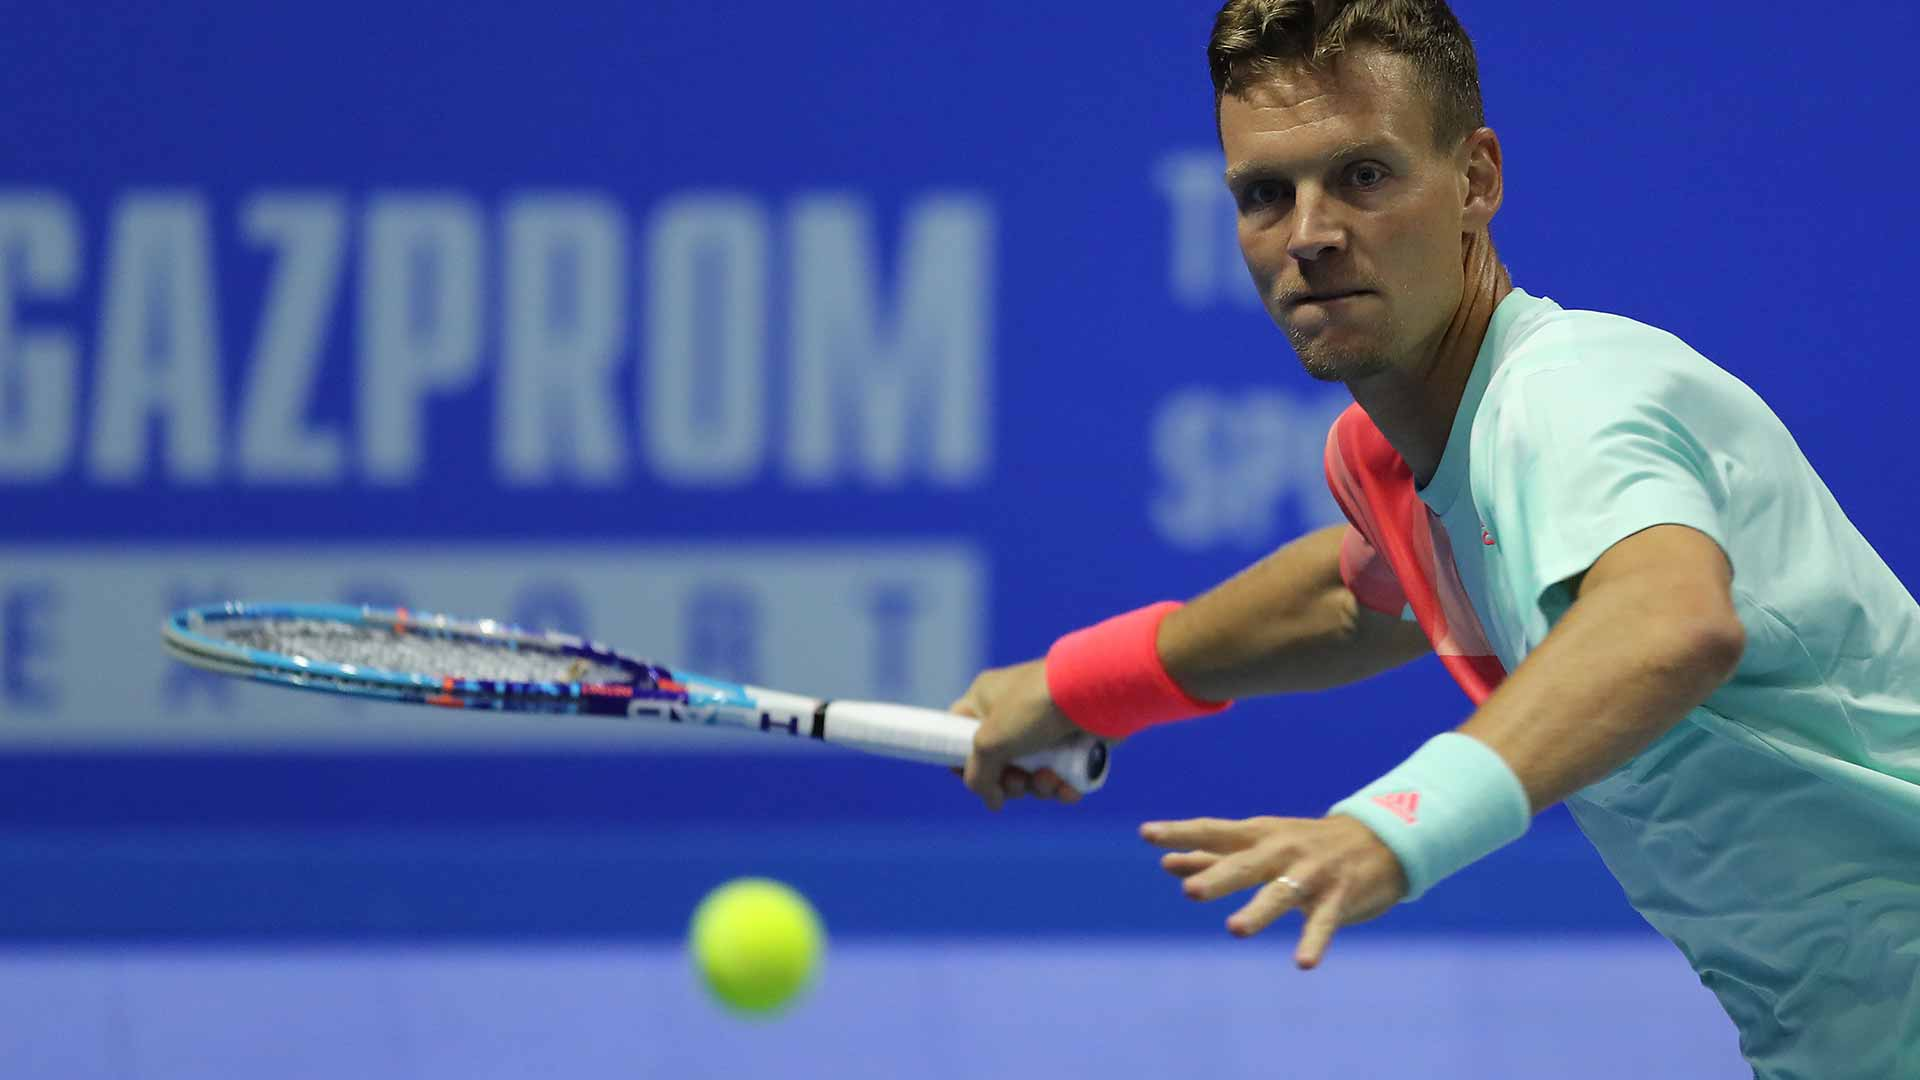 Tomas Berdych moves into the semi-finals in St. Petersburg.